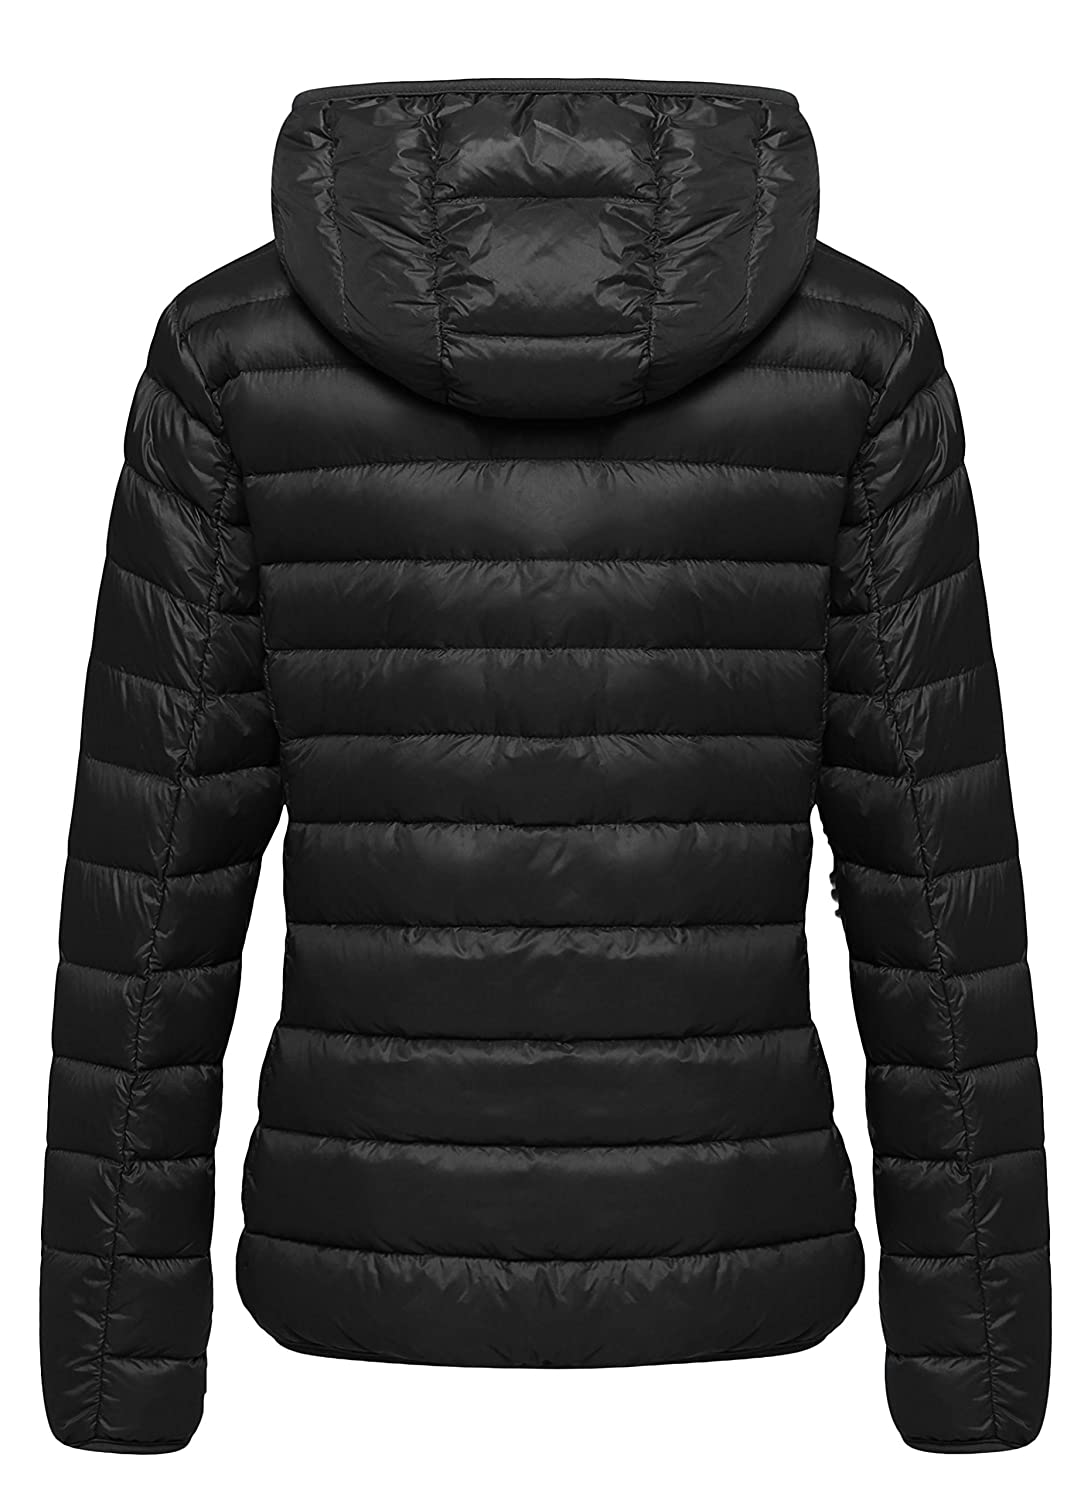 Other Women's Clothing Women's Clothing Beautiful Result Ladies Jacket Winter Coat Warm Lining Ski Sport Light Padded Hood Colours